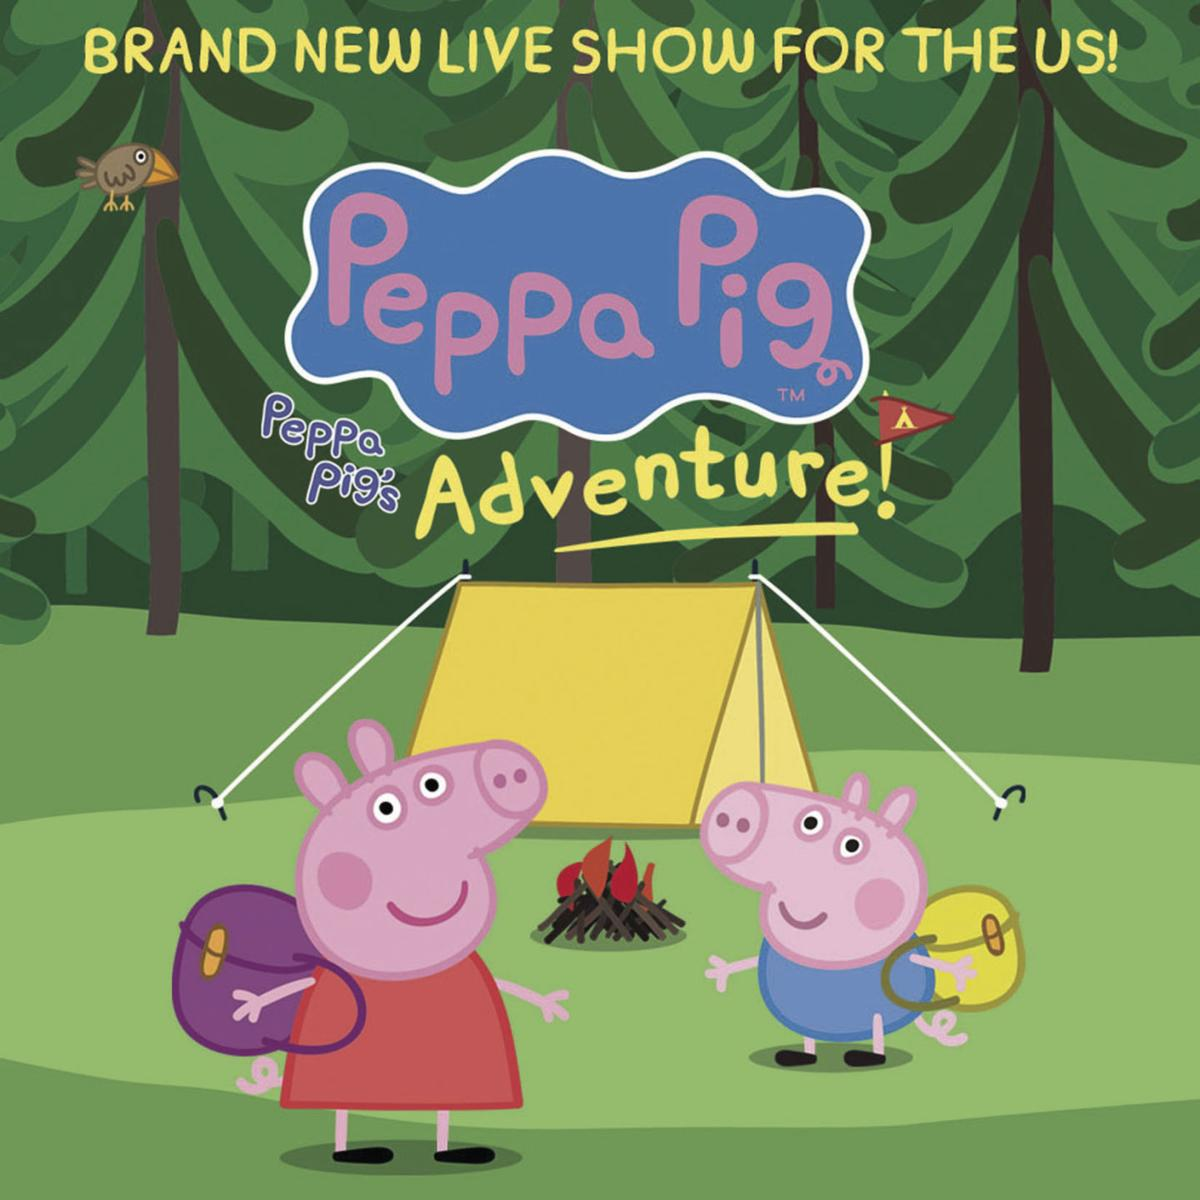 Peppa Pig ready for adventure at Bob Hope Theatre